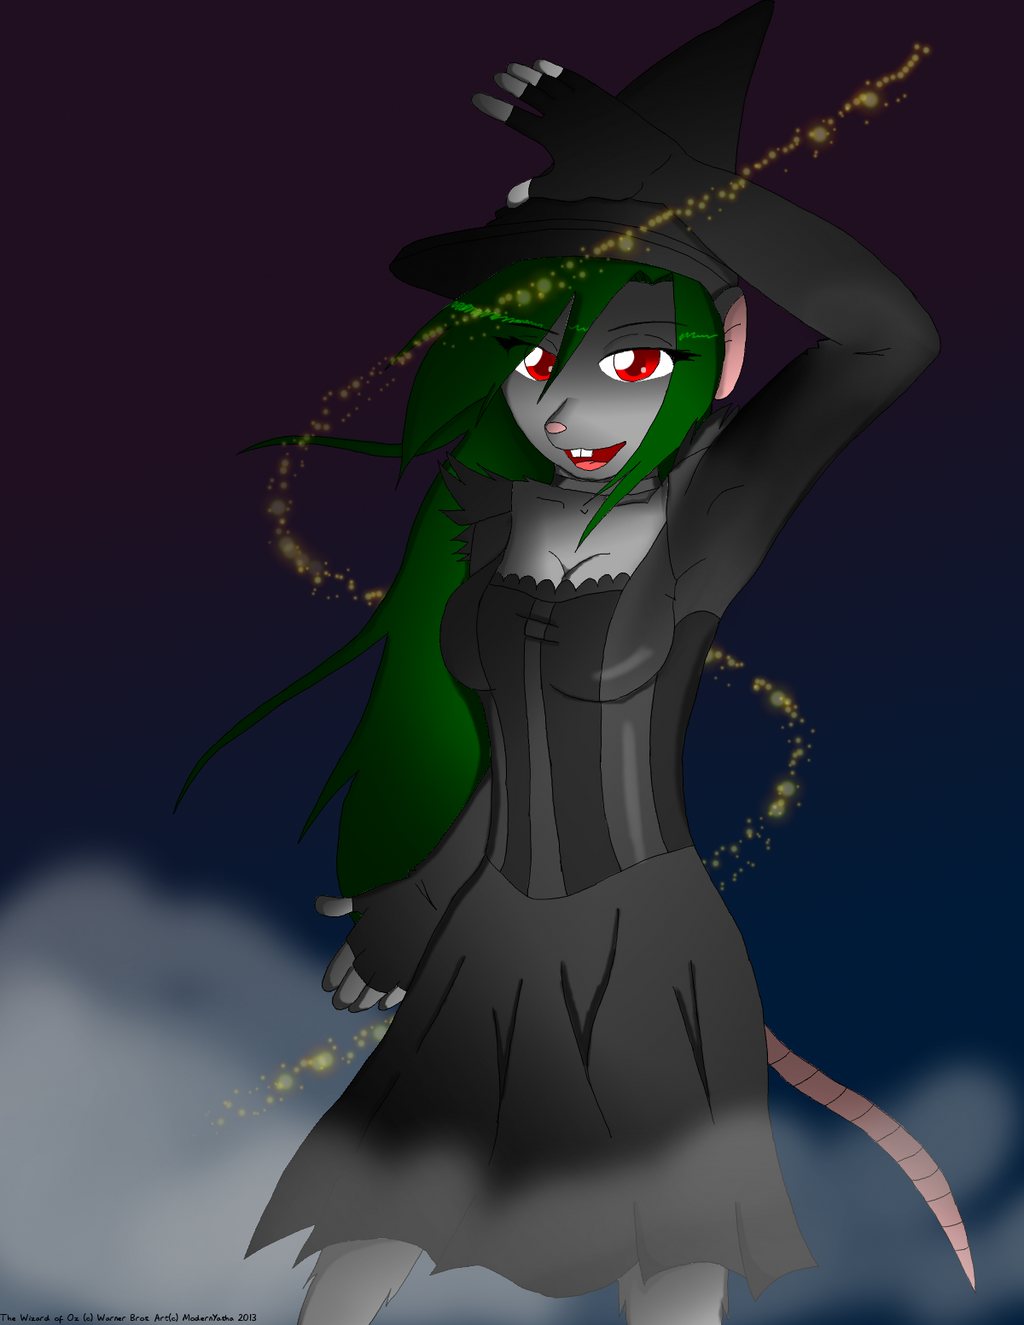 Wicked Witch of the West by ModernYasha - 964.5KB